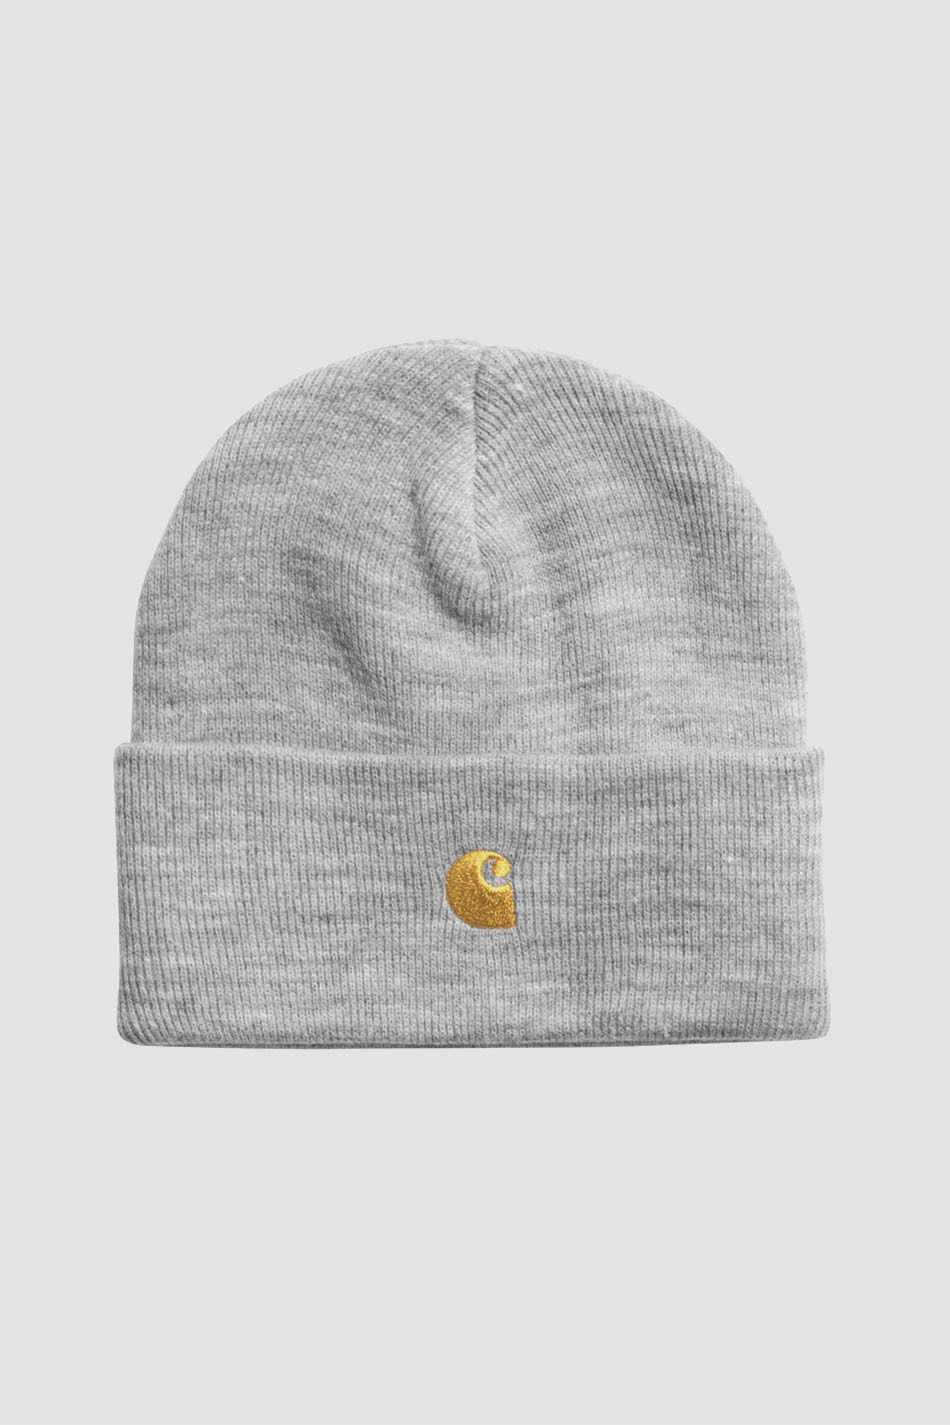 Carhartt Chase Beanie Grey heather/Gold Hat